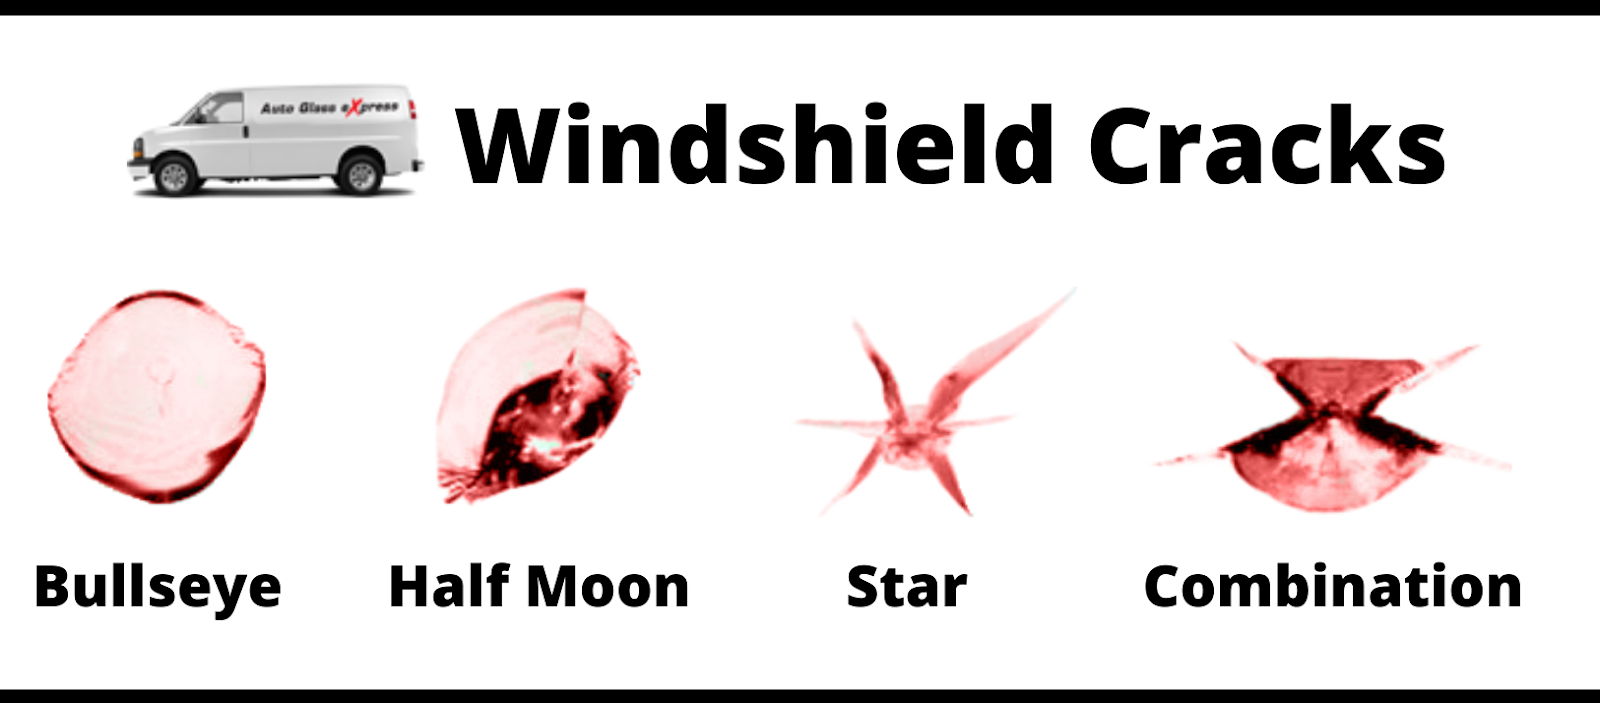 Types of windshield cracks.